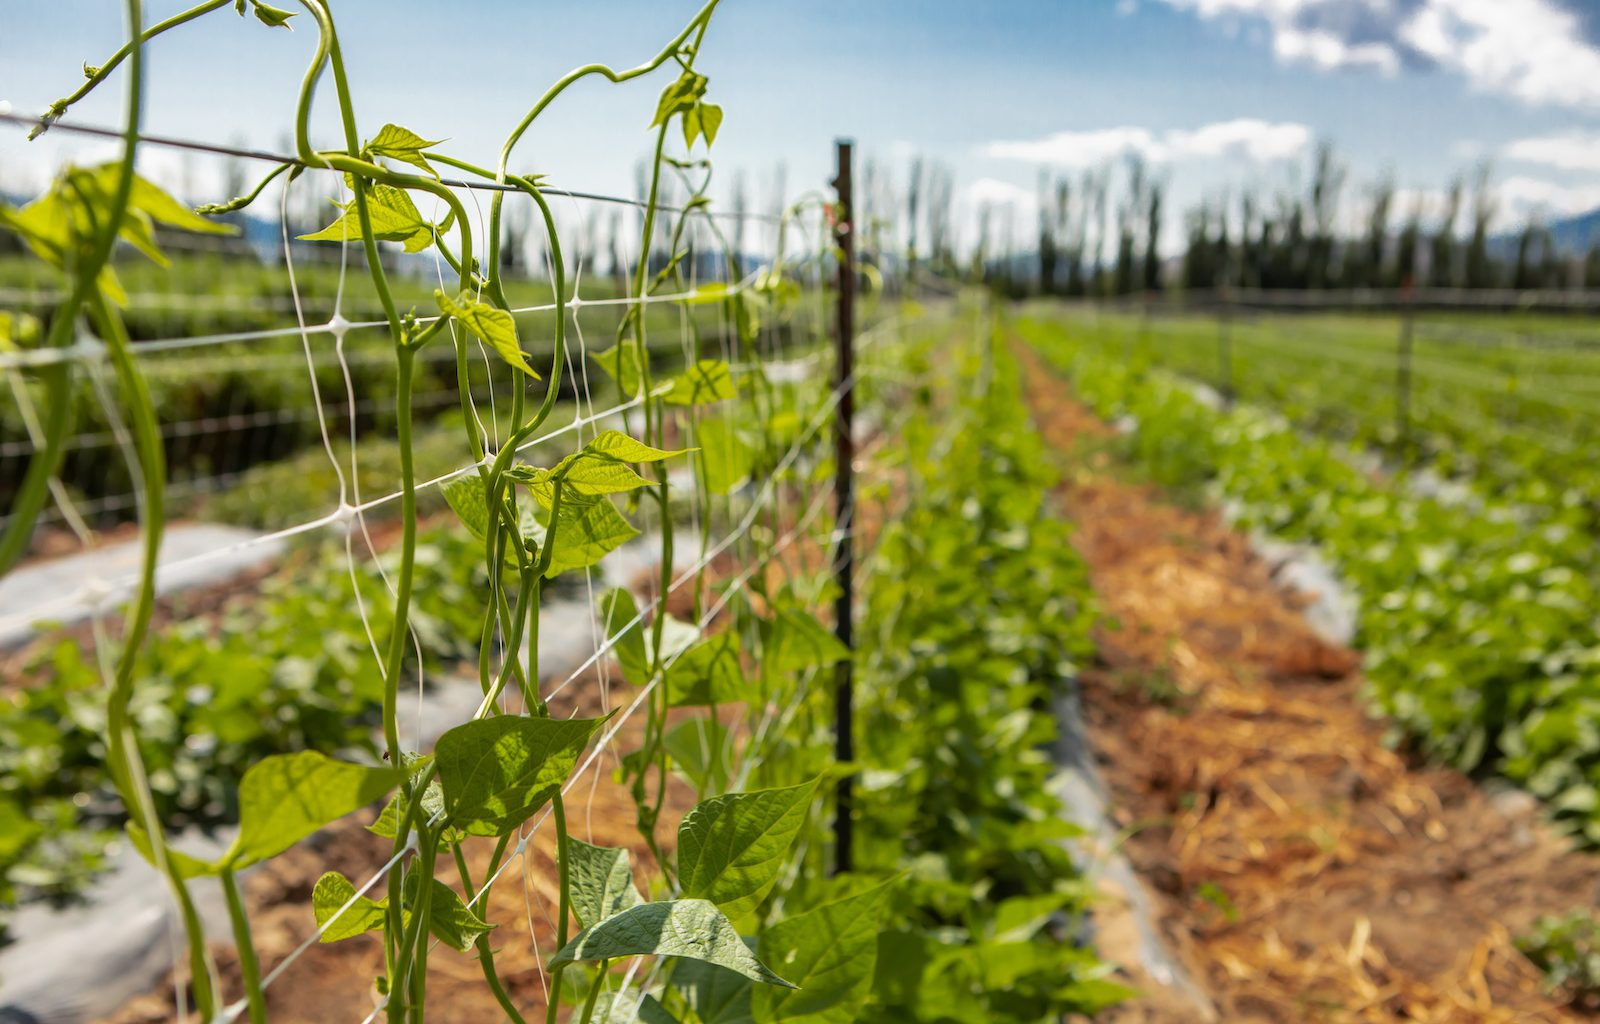 How to build a pea trellis